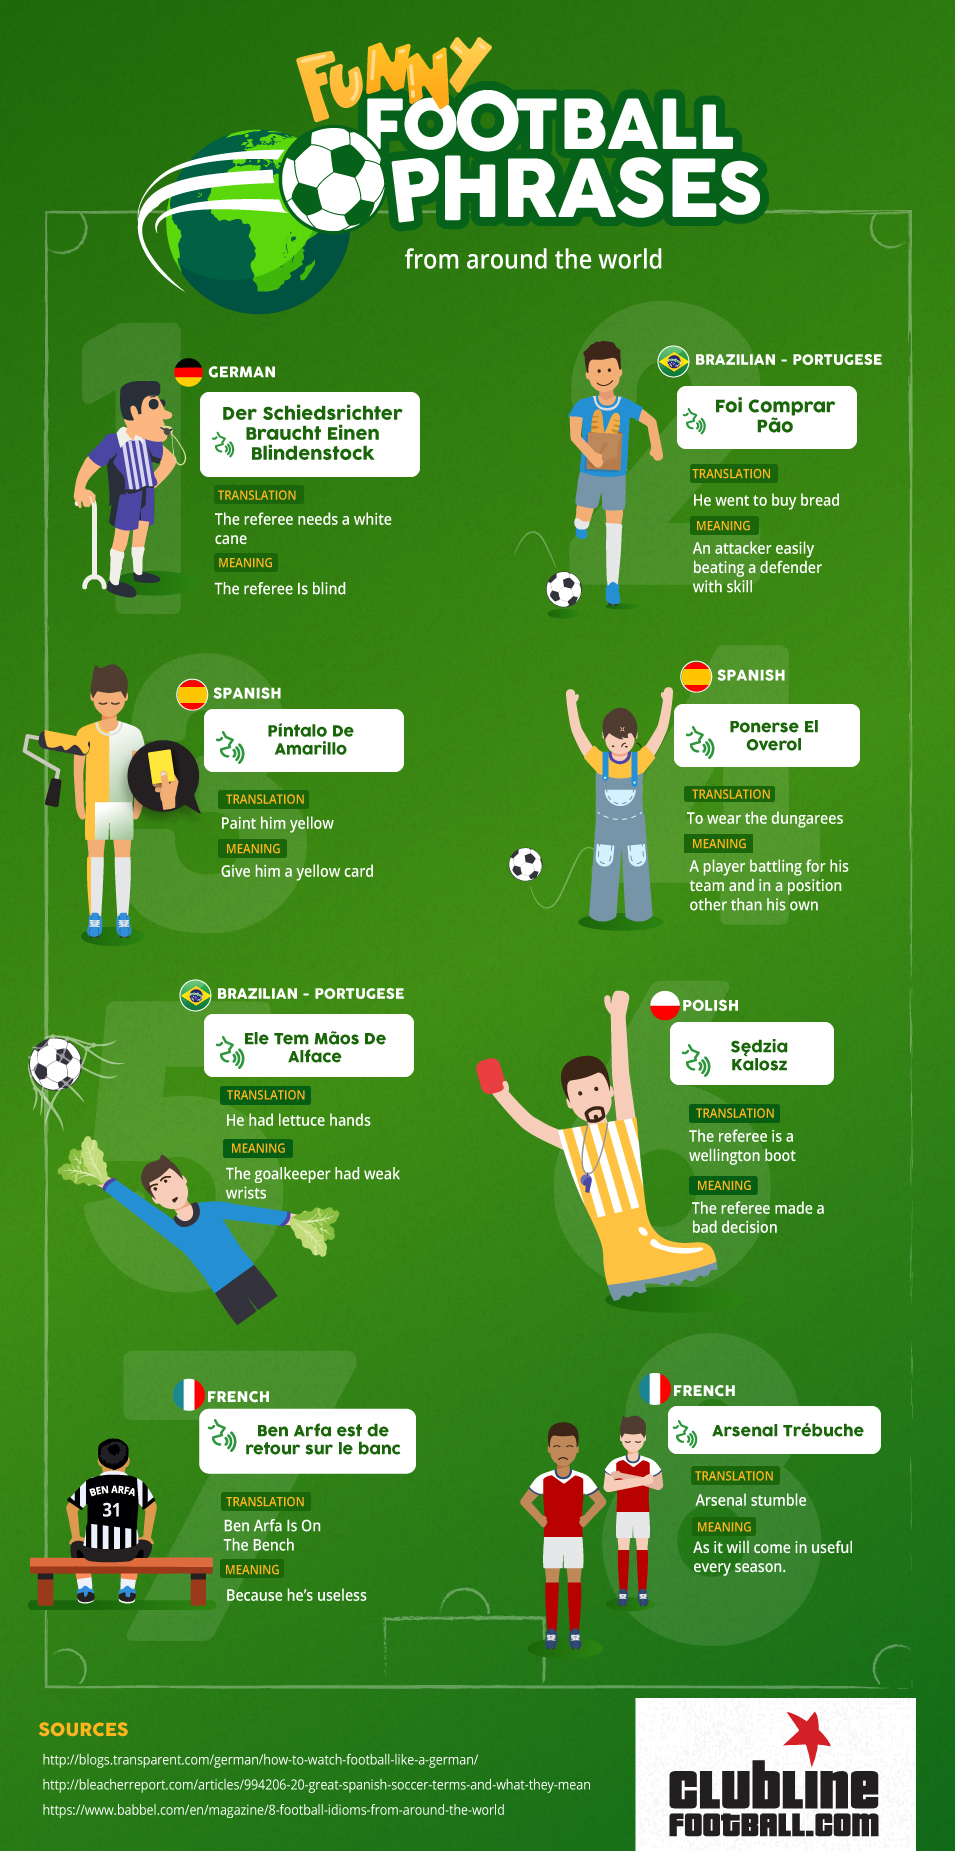 Amusing Phrases You'll Hear In Football Games Around The World - Infographic